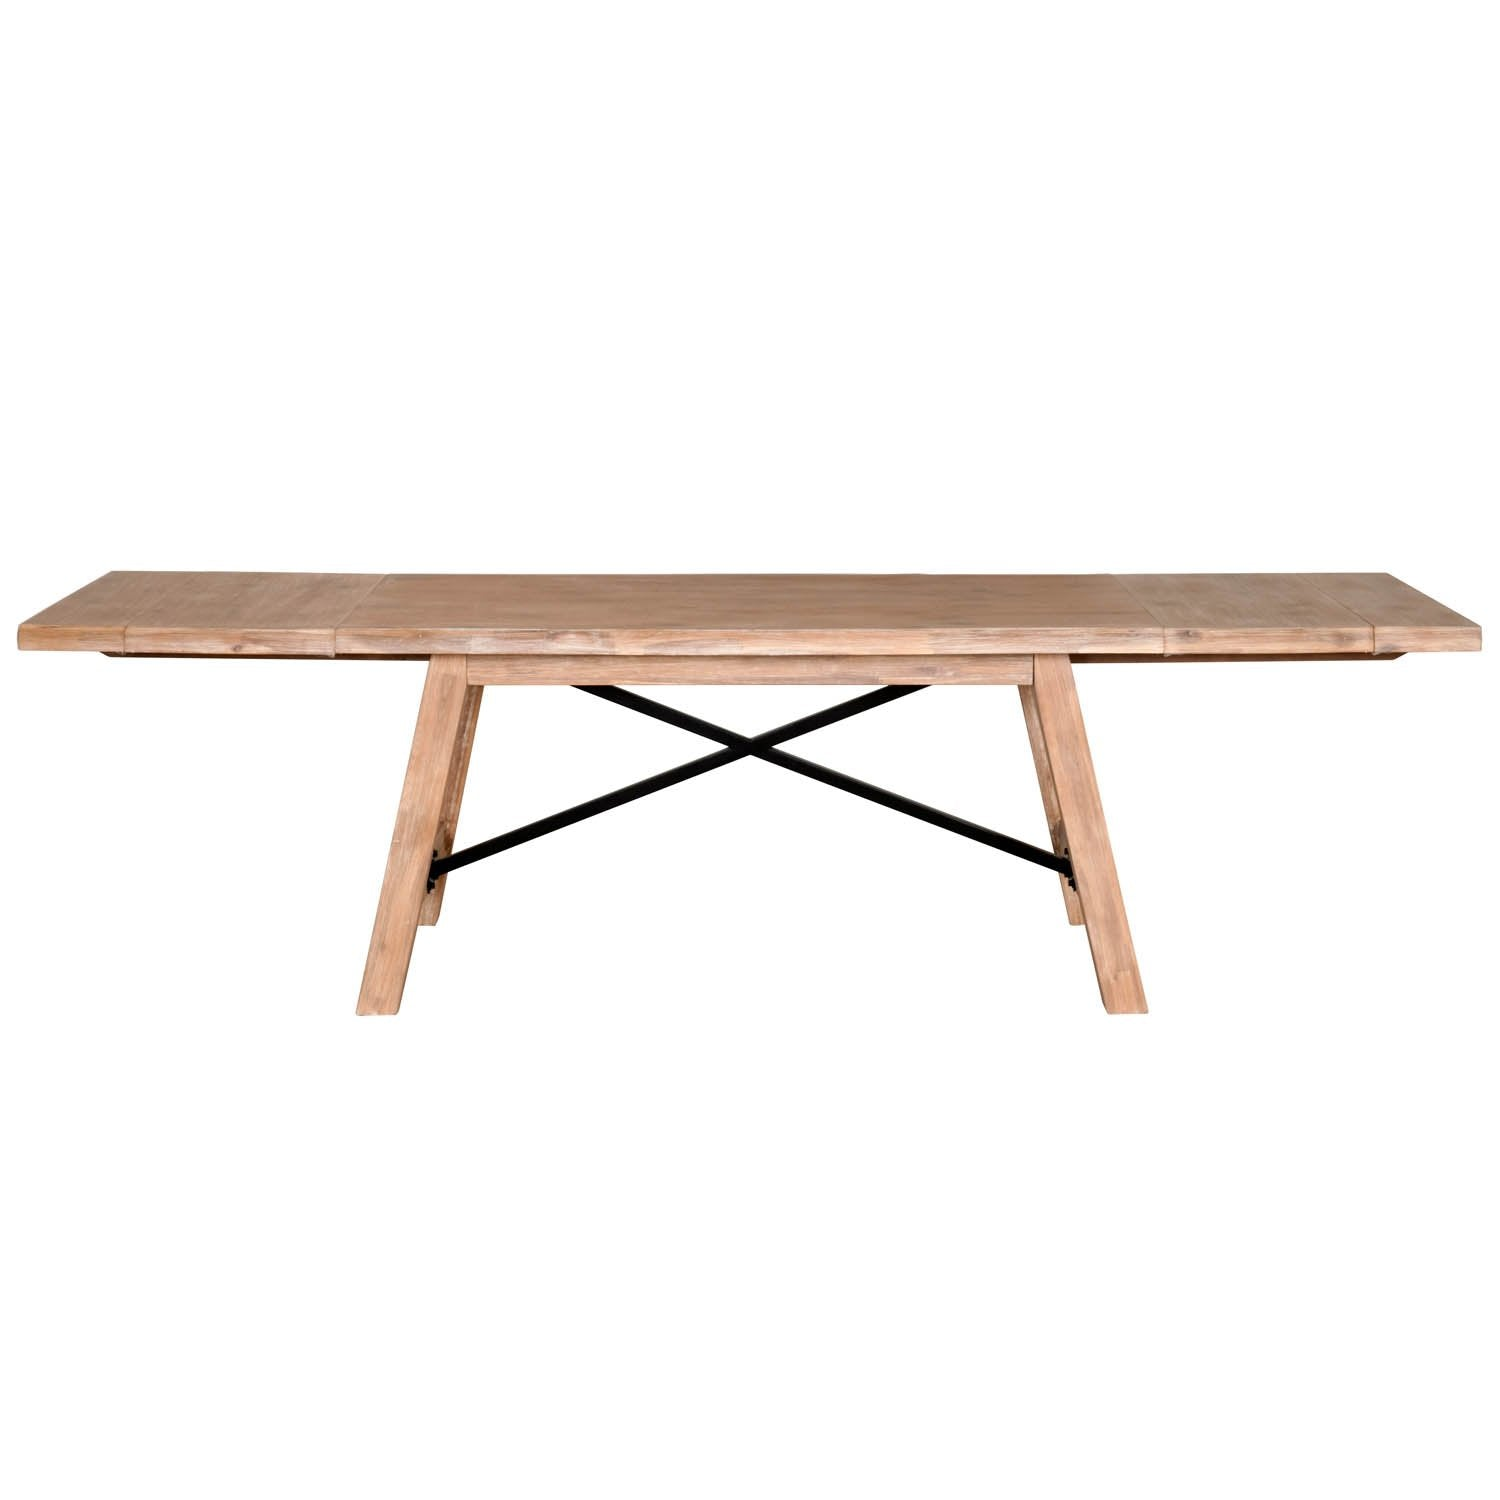 Nixon Extension Dining Table in Stone Wash